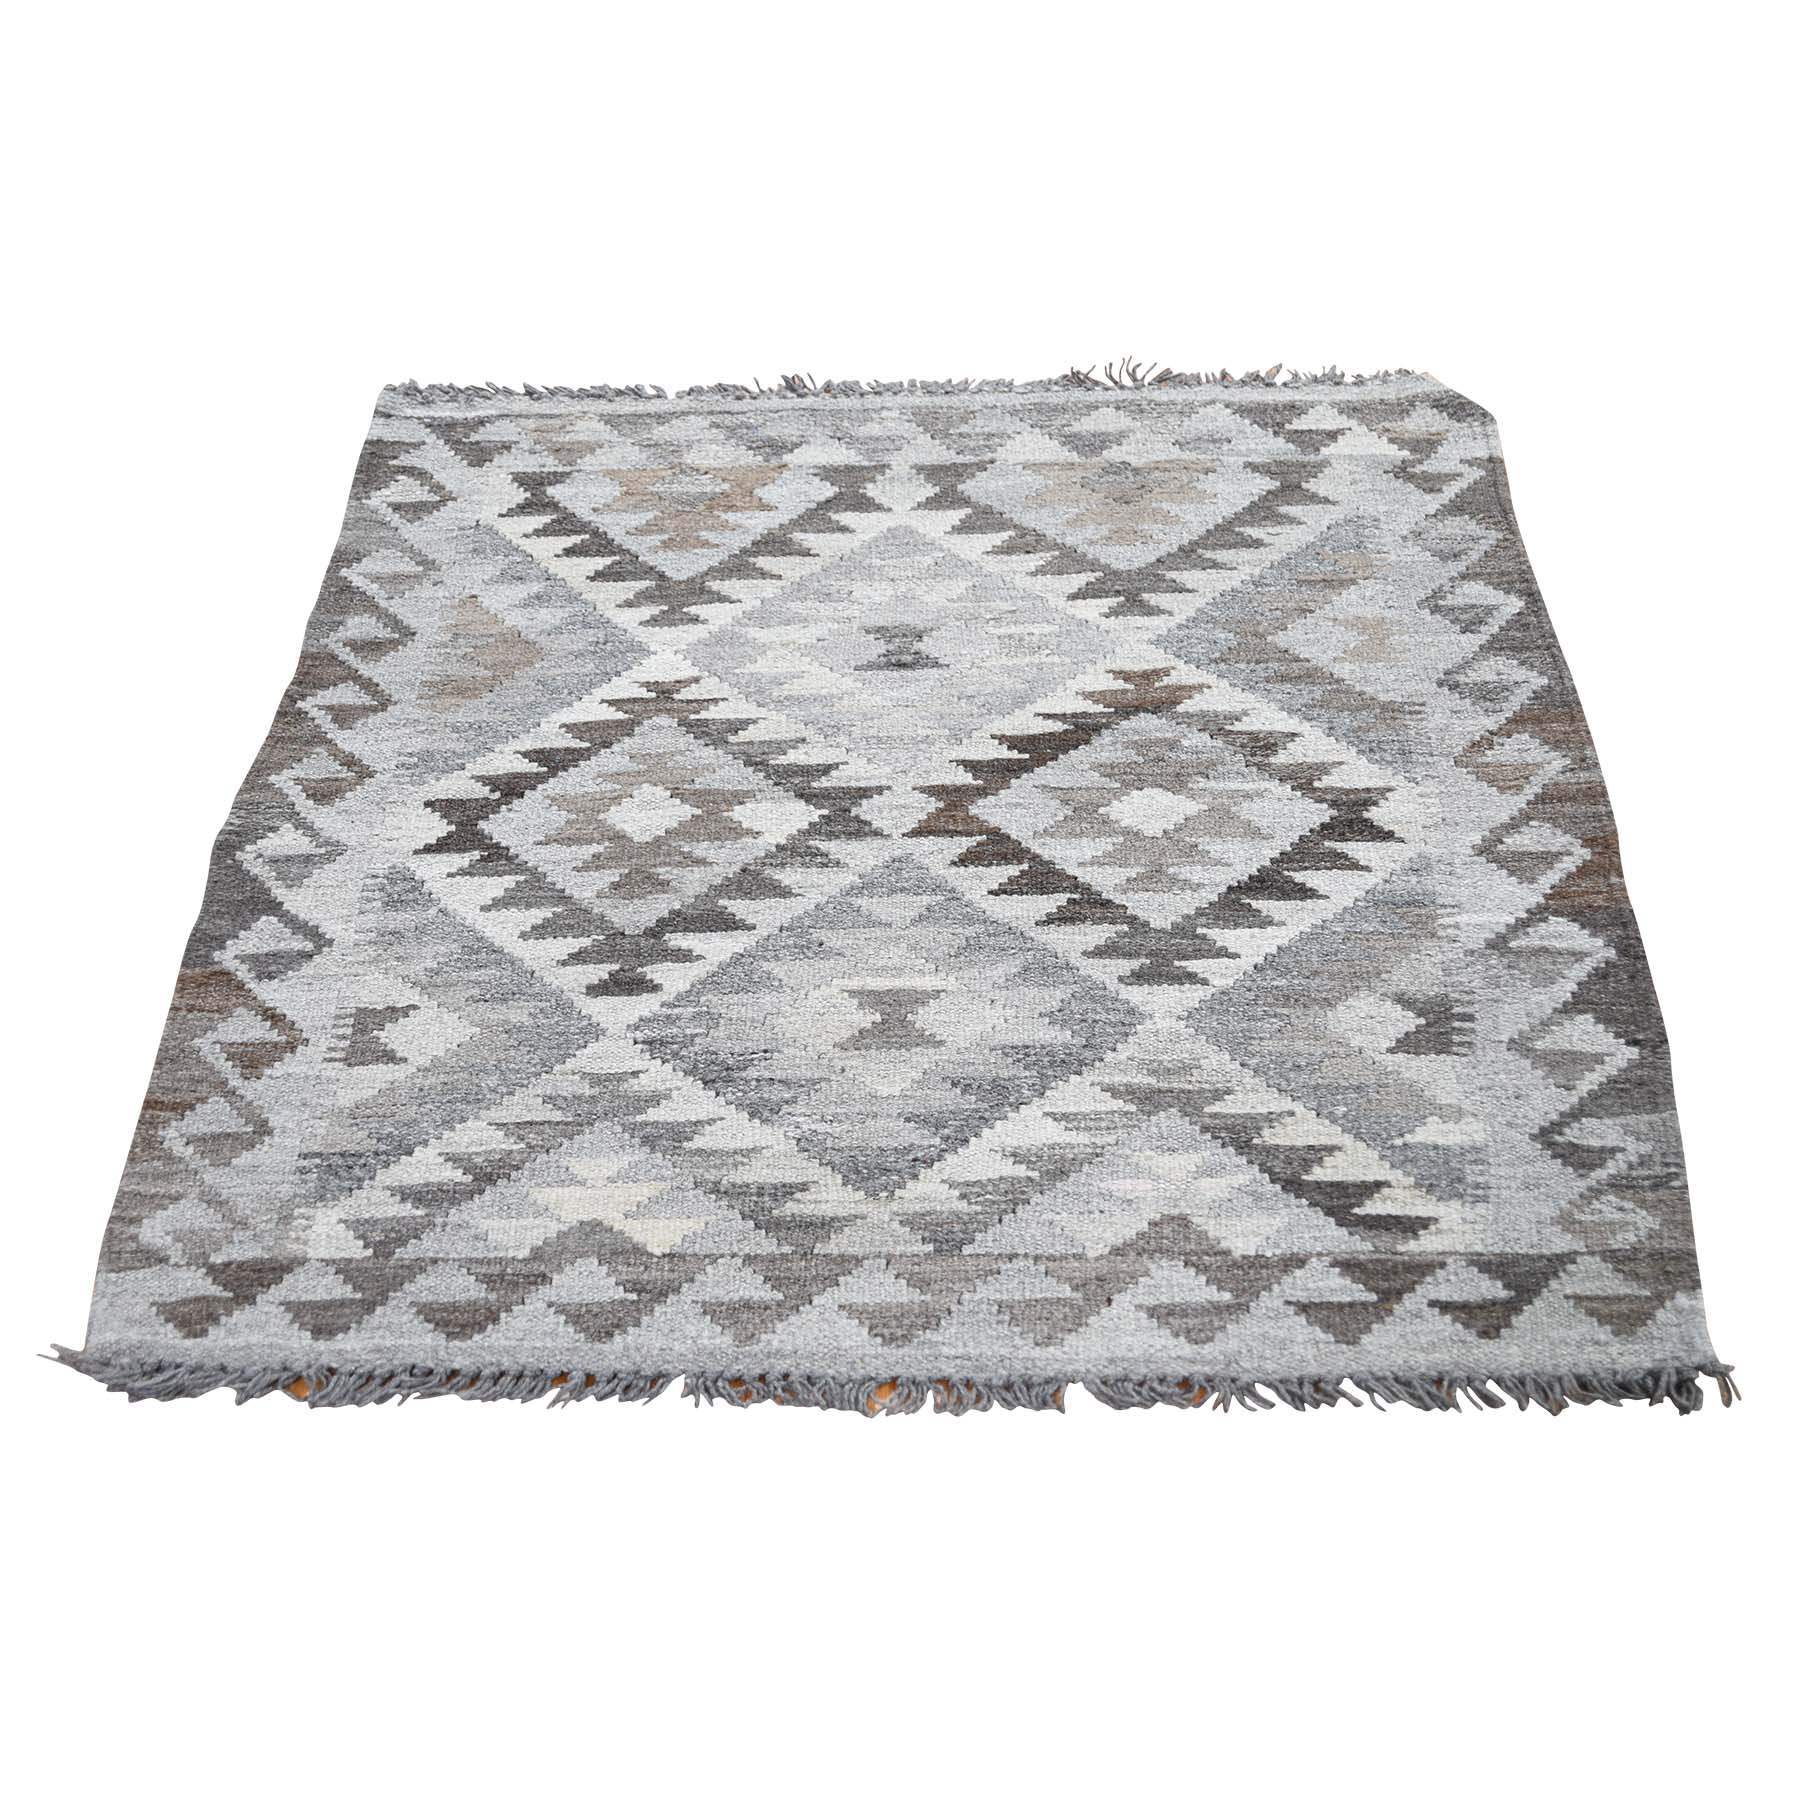 "2'10""X3'9"" Undyed Natural Wool Afghan Kilim Reversible Hand Woven Oriental Rug moade6a8"